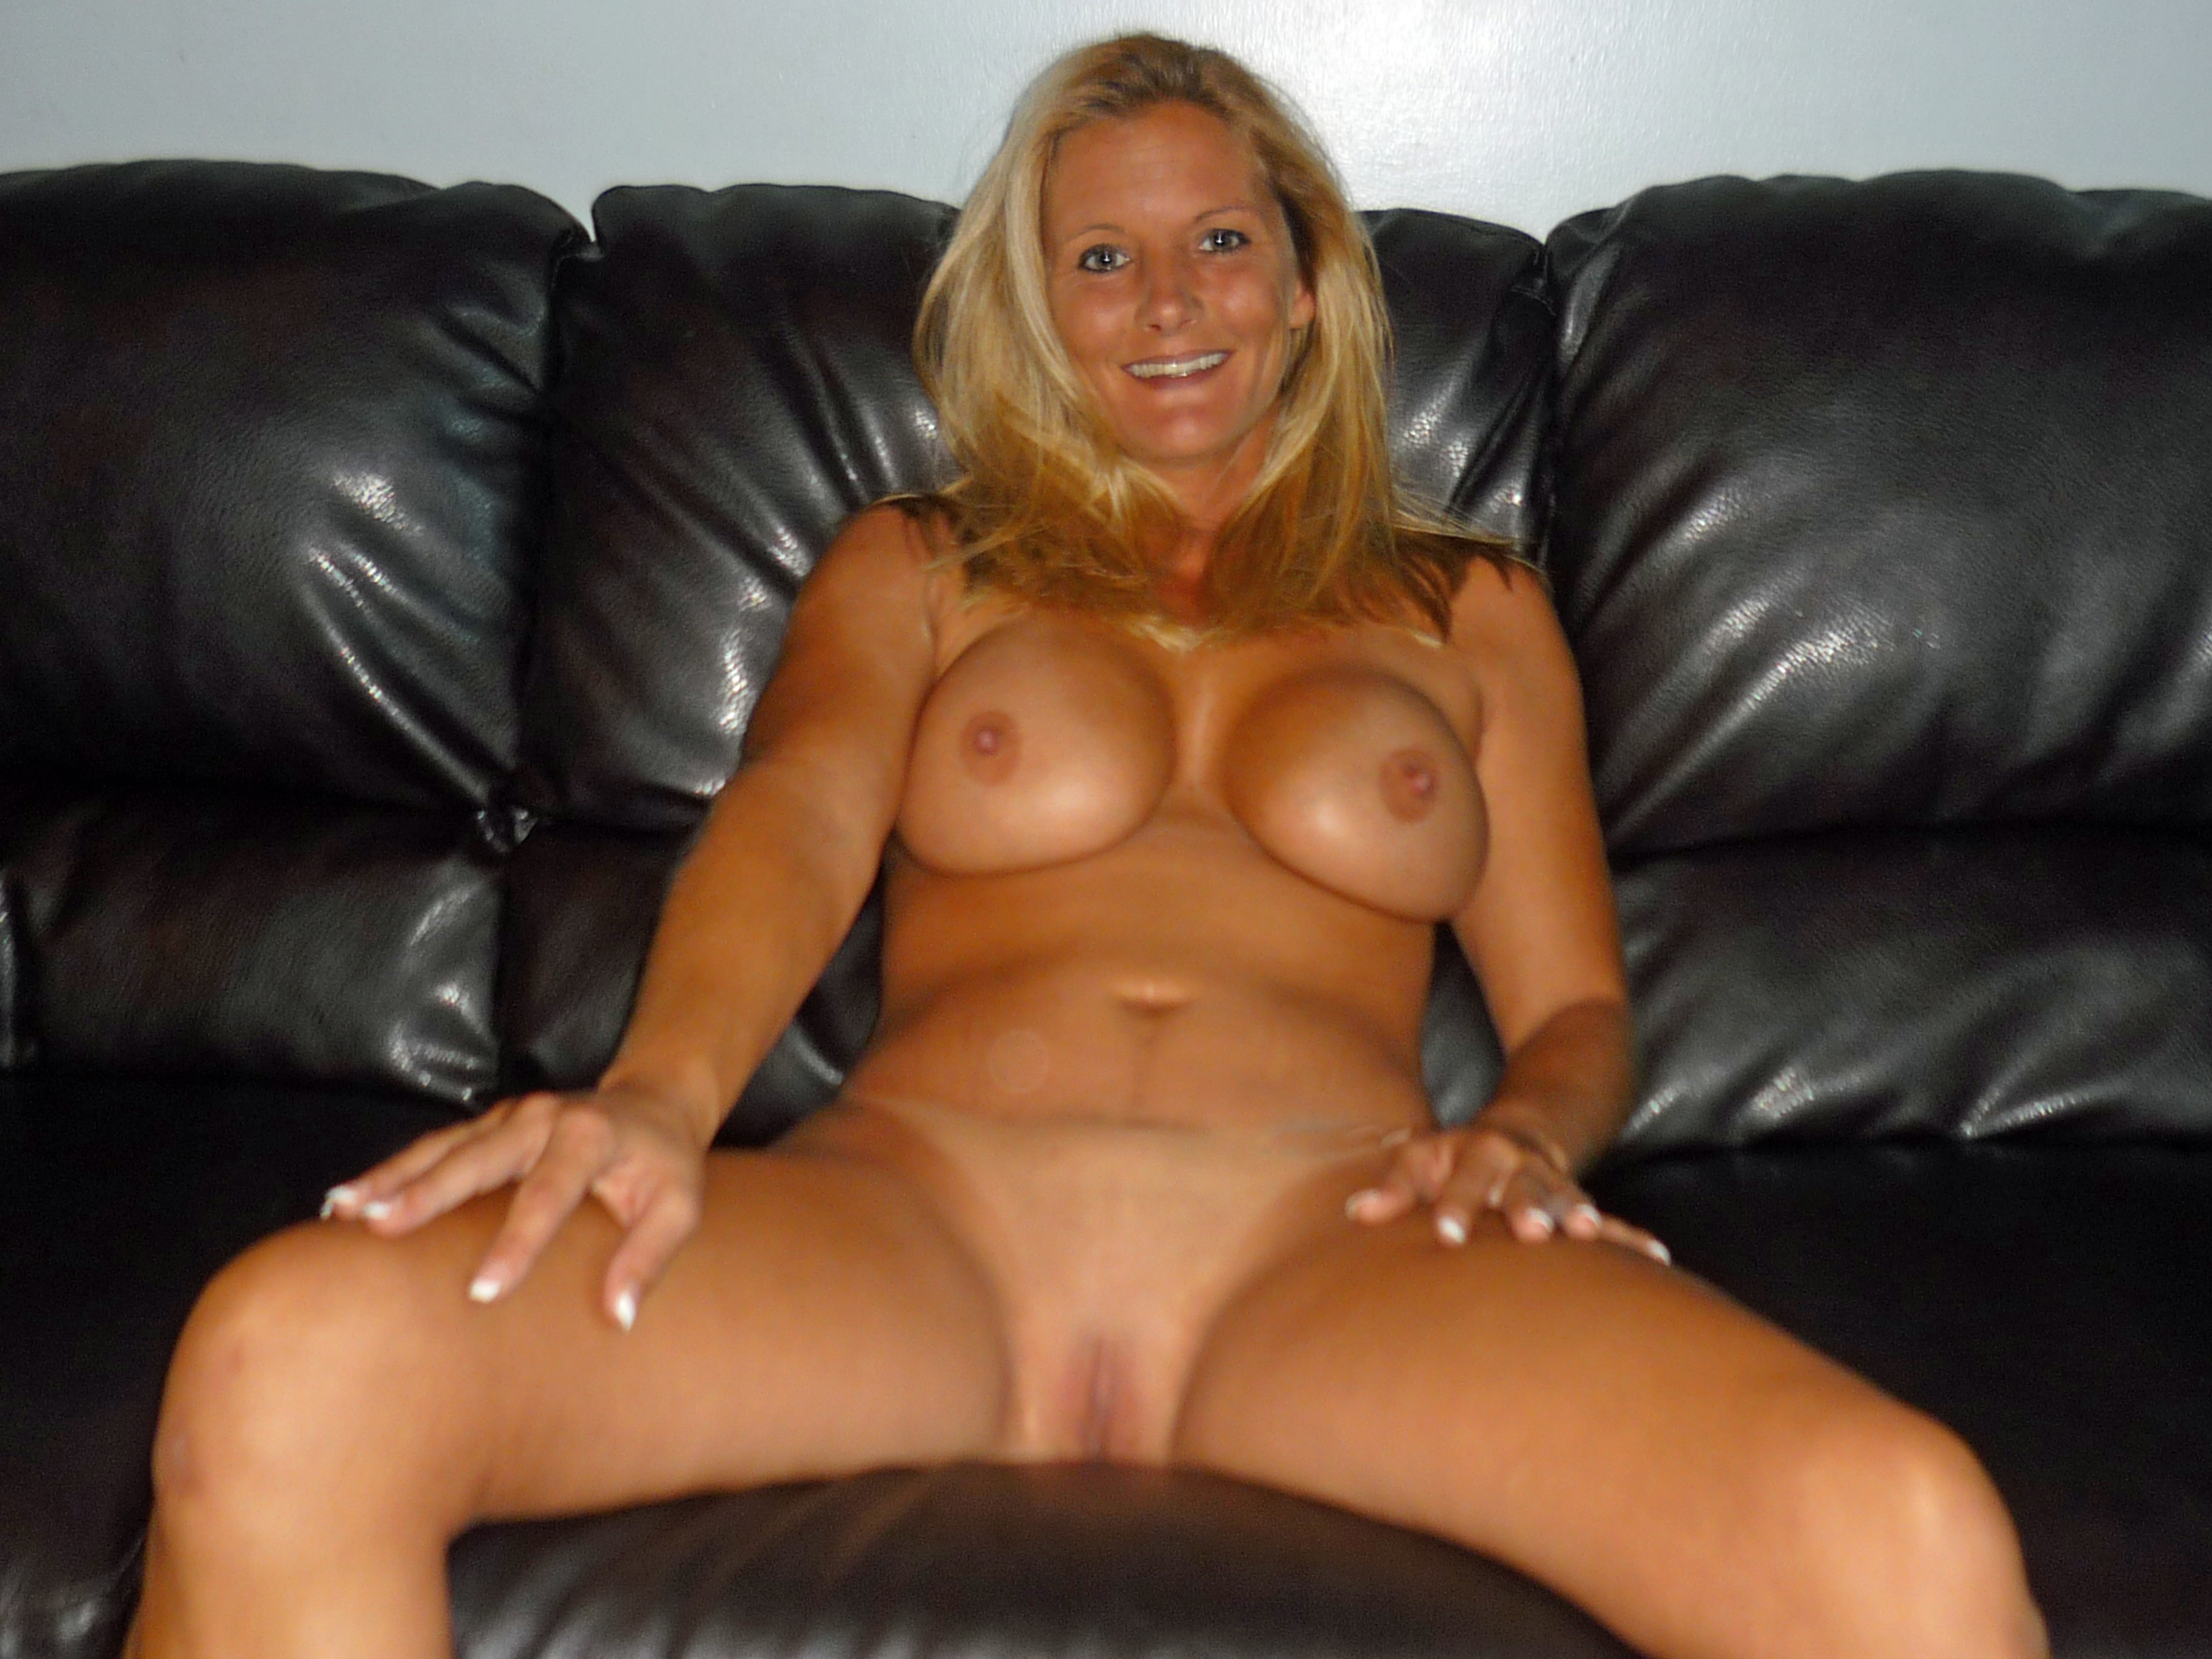 Free to contact transsexual